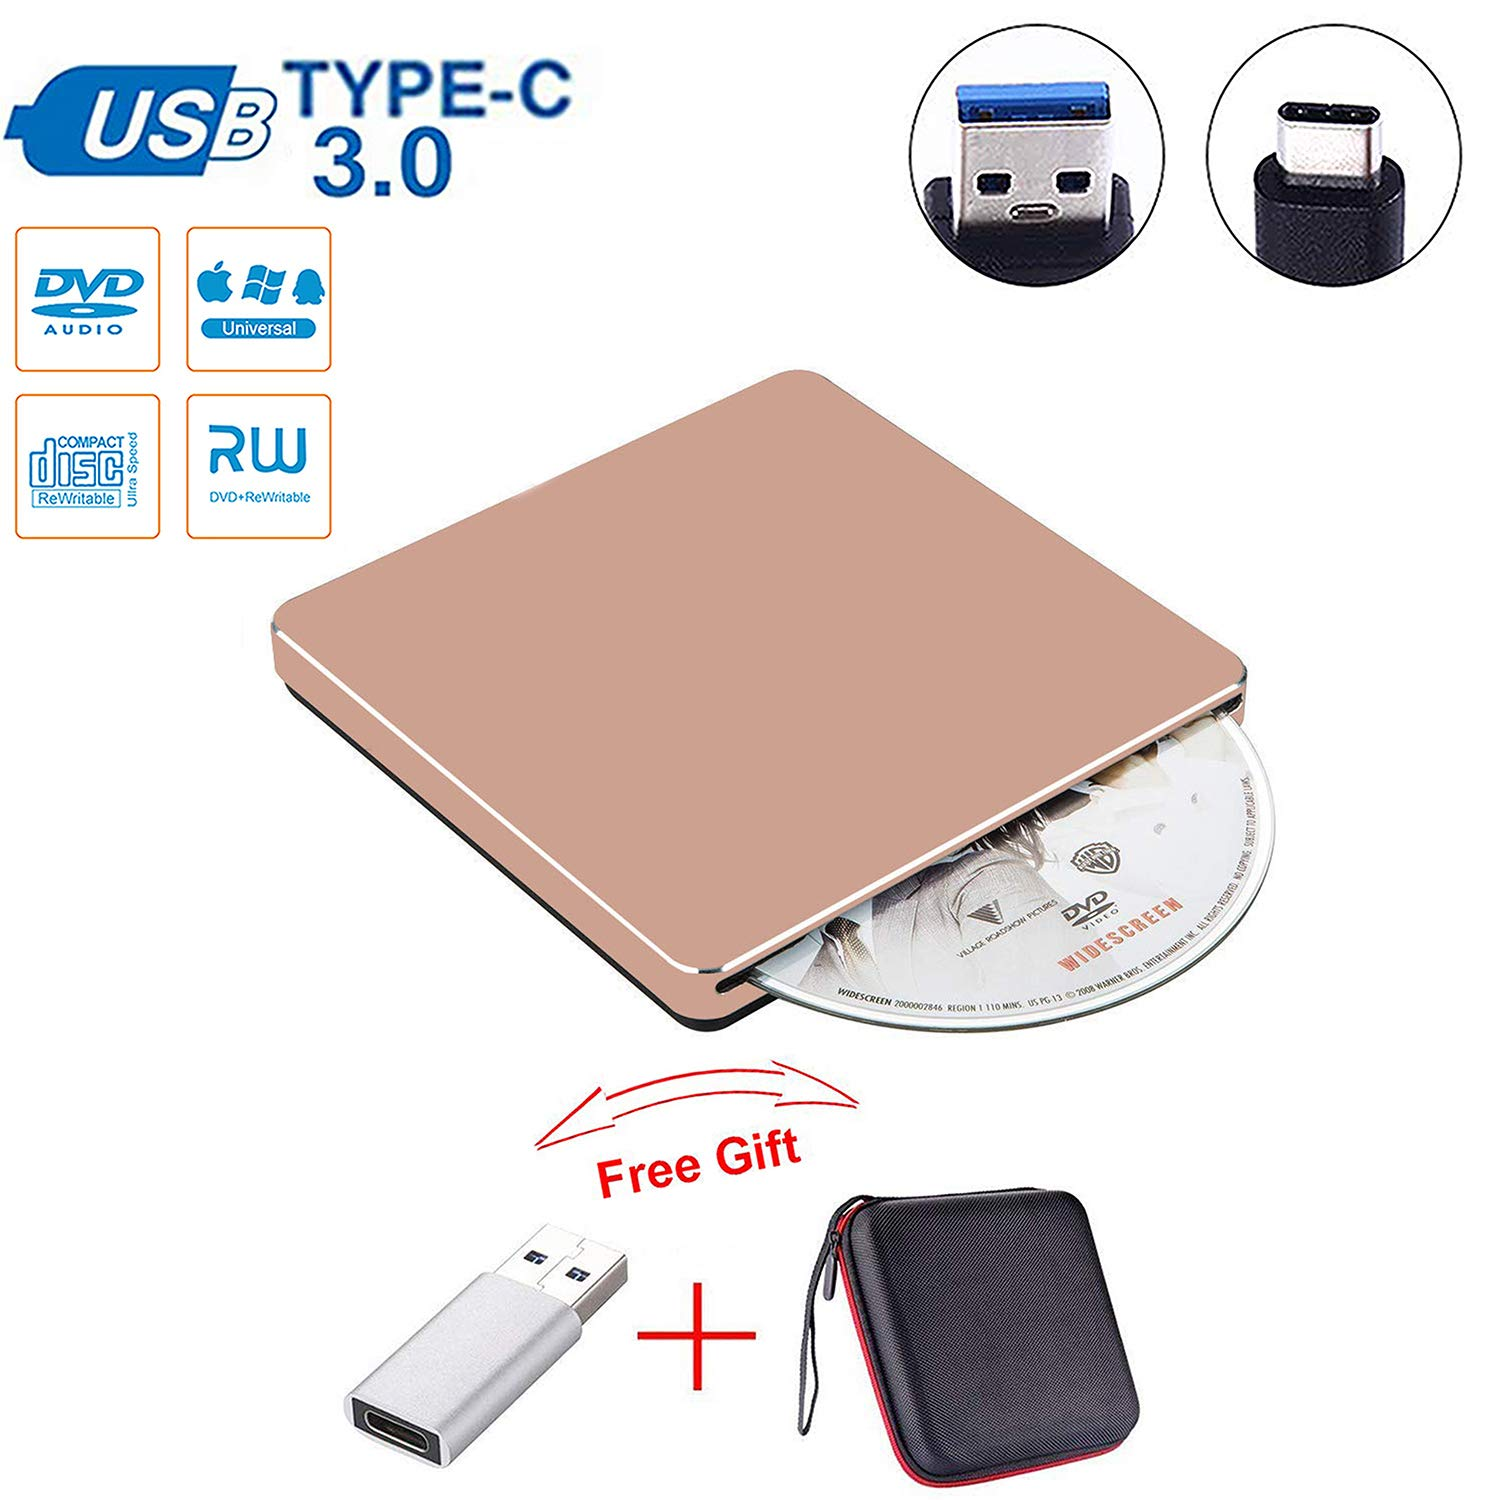 Guamar External CD DVD Drive USB C Slot in Drive USB 3.0 External CD Drive CD Player +/-RW Burner Writer Compatible with MacBook Pro Air/Laptop/Windows10 with Free USB 3.0 Adapter (Rose Gold) by Guamar